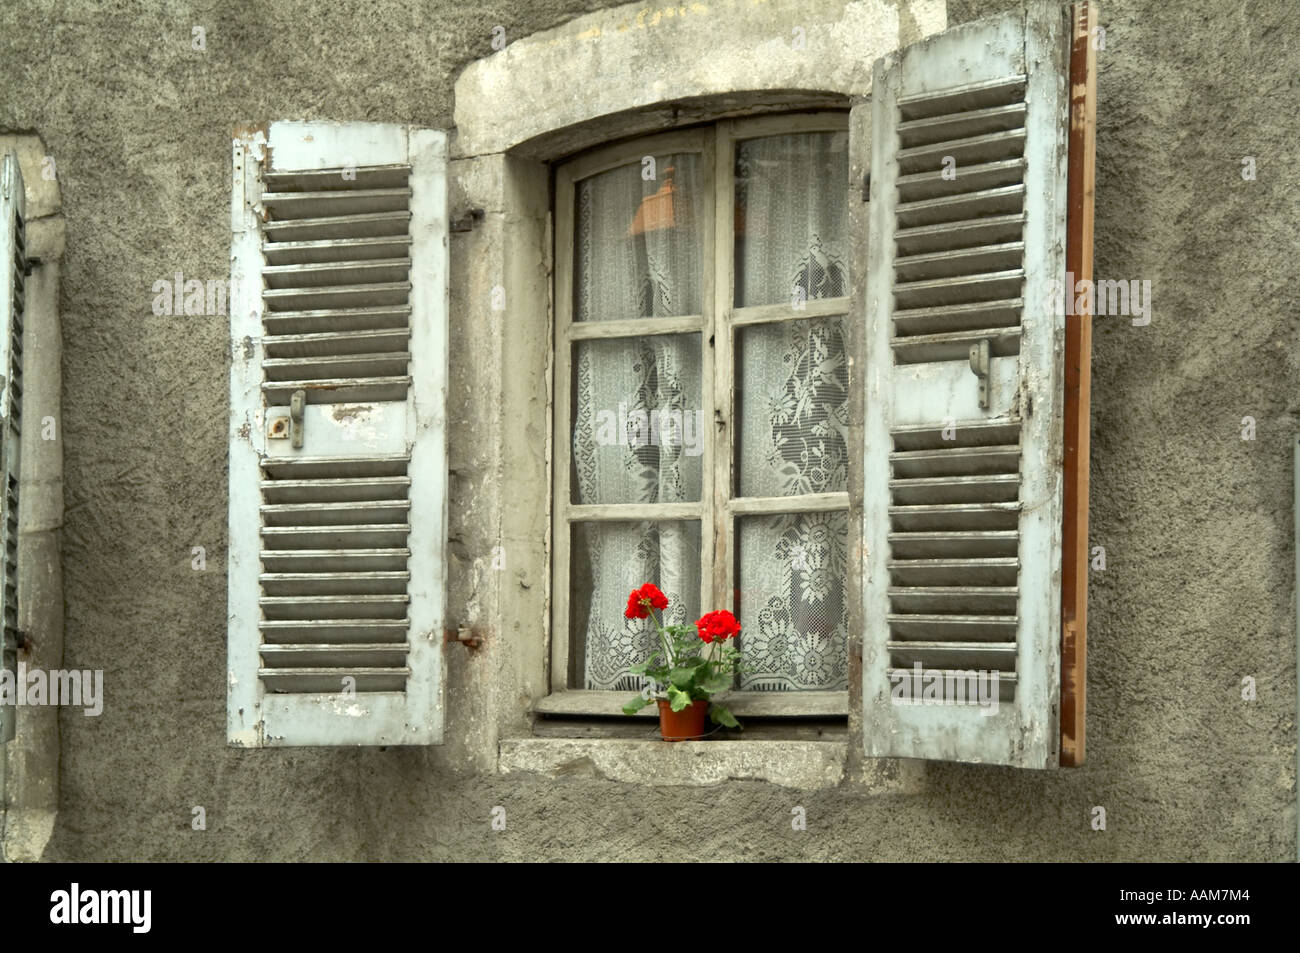 shutters, shuttered, windows, france, french, house, housing, south, of, france, european, - Stock Image